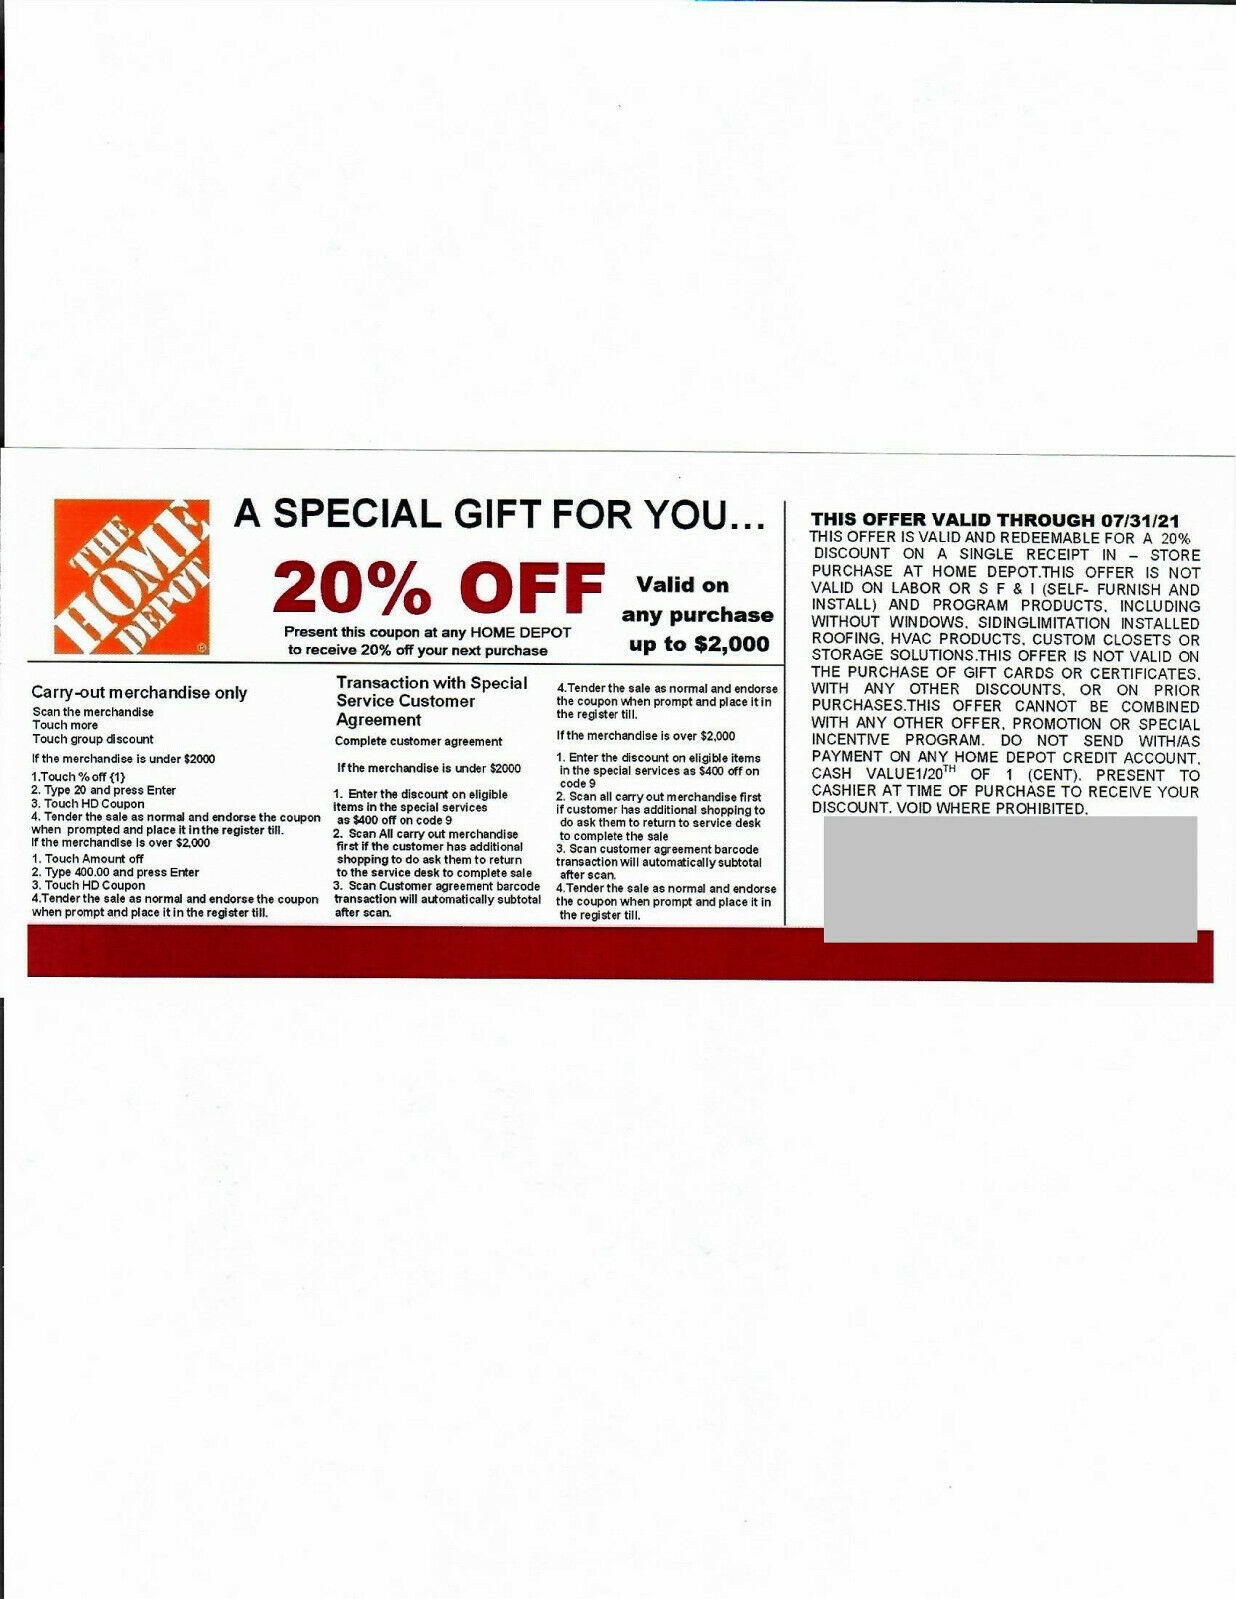 1 20 OFF HOME DEPOT Competitors Coupon Expires 07/31/21  - $5.00